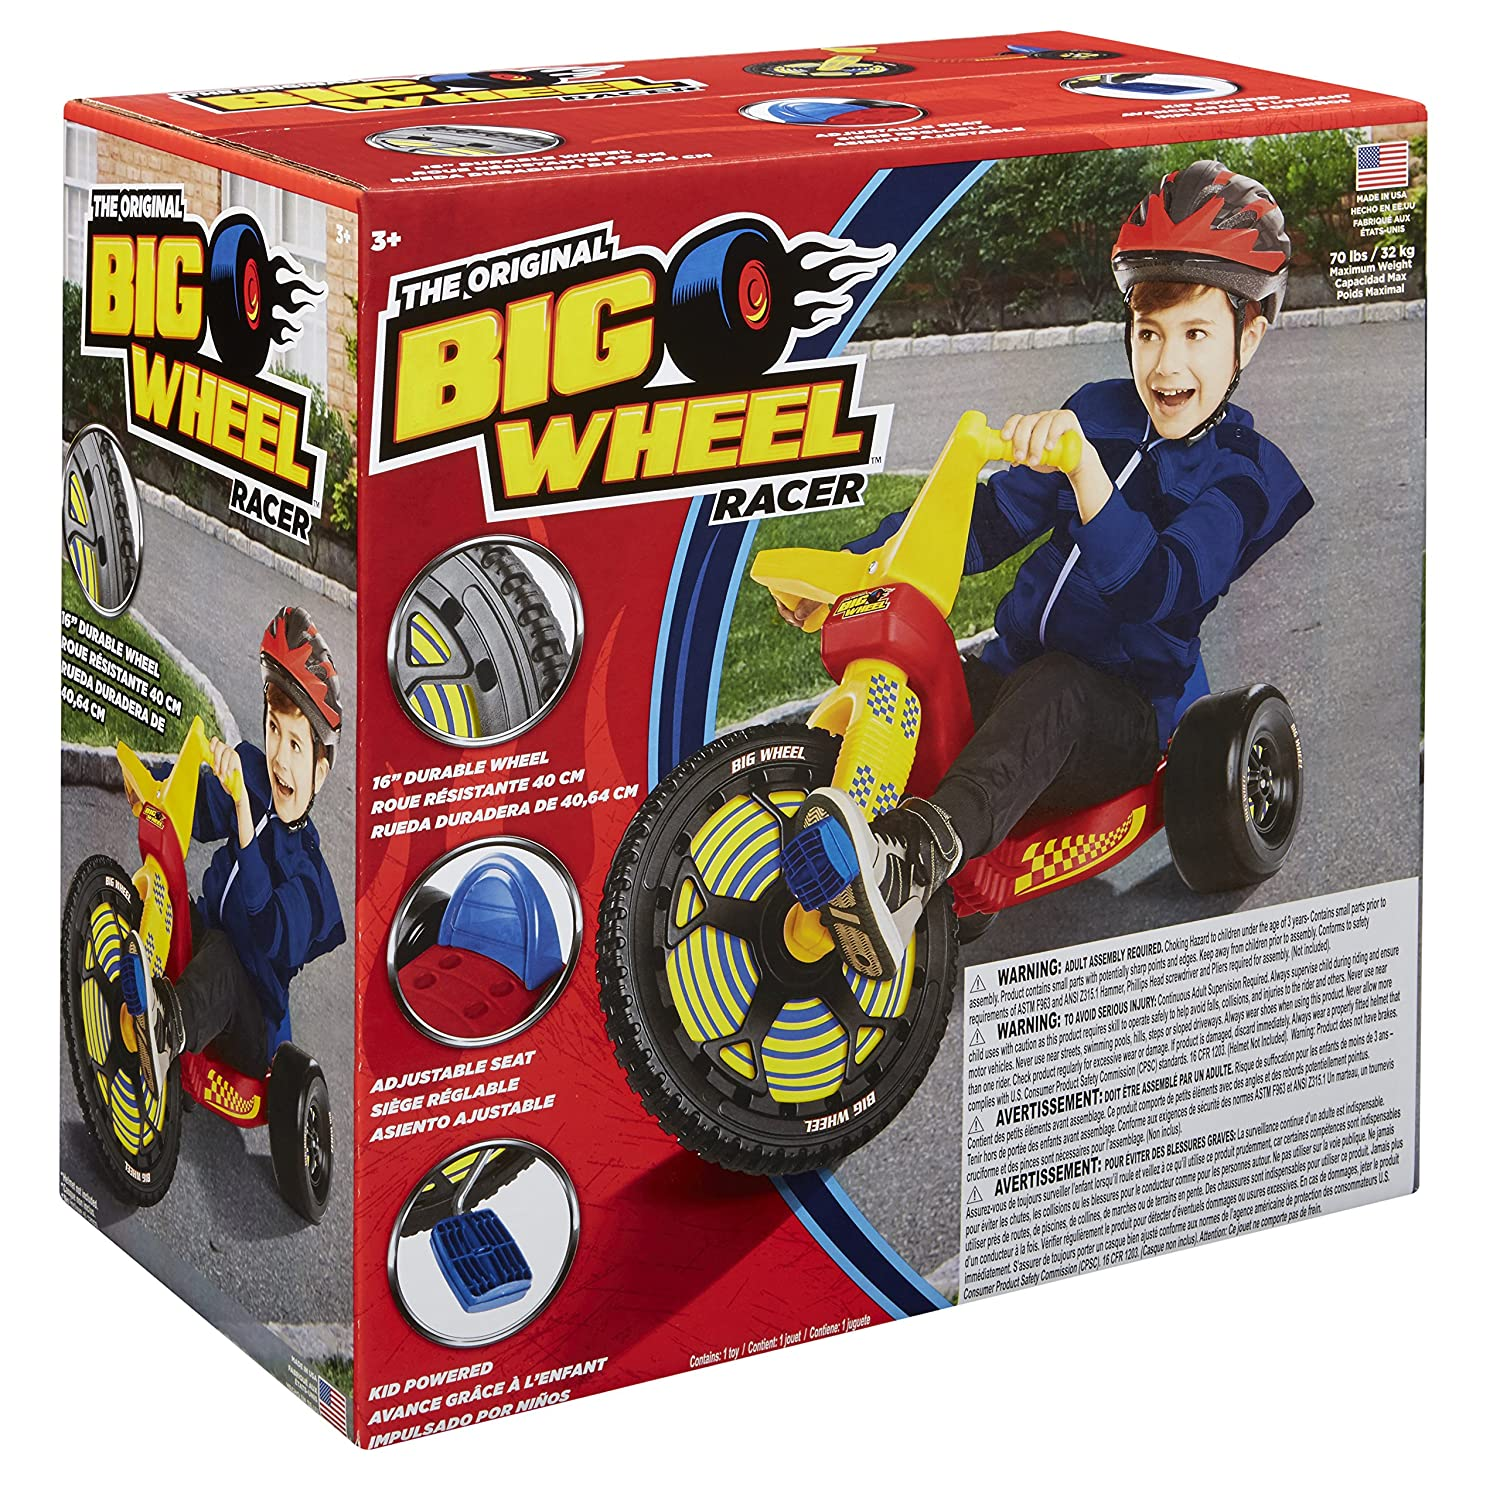 Ride On Toys Online Shopping For Clothing Shoes Jewelry Pet Fisher Price Harley Davidson Tough Trike Big Wheels The Original 16in Racer Classic